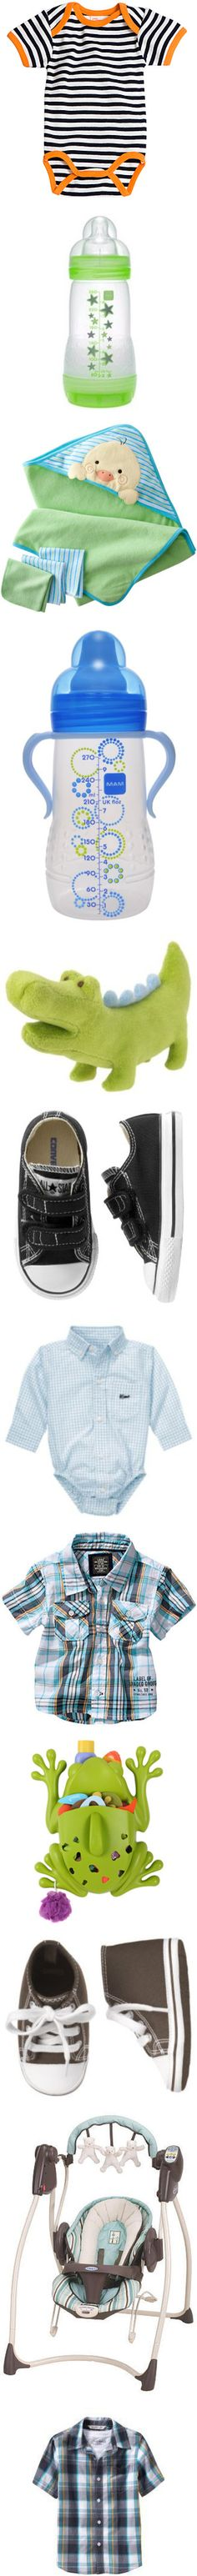 """""""COMI: Baby/Kid Stuff (Part 2)"""" by sarratori ❤ liked on Polyvore"""